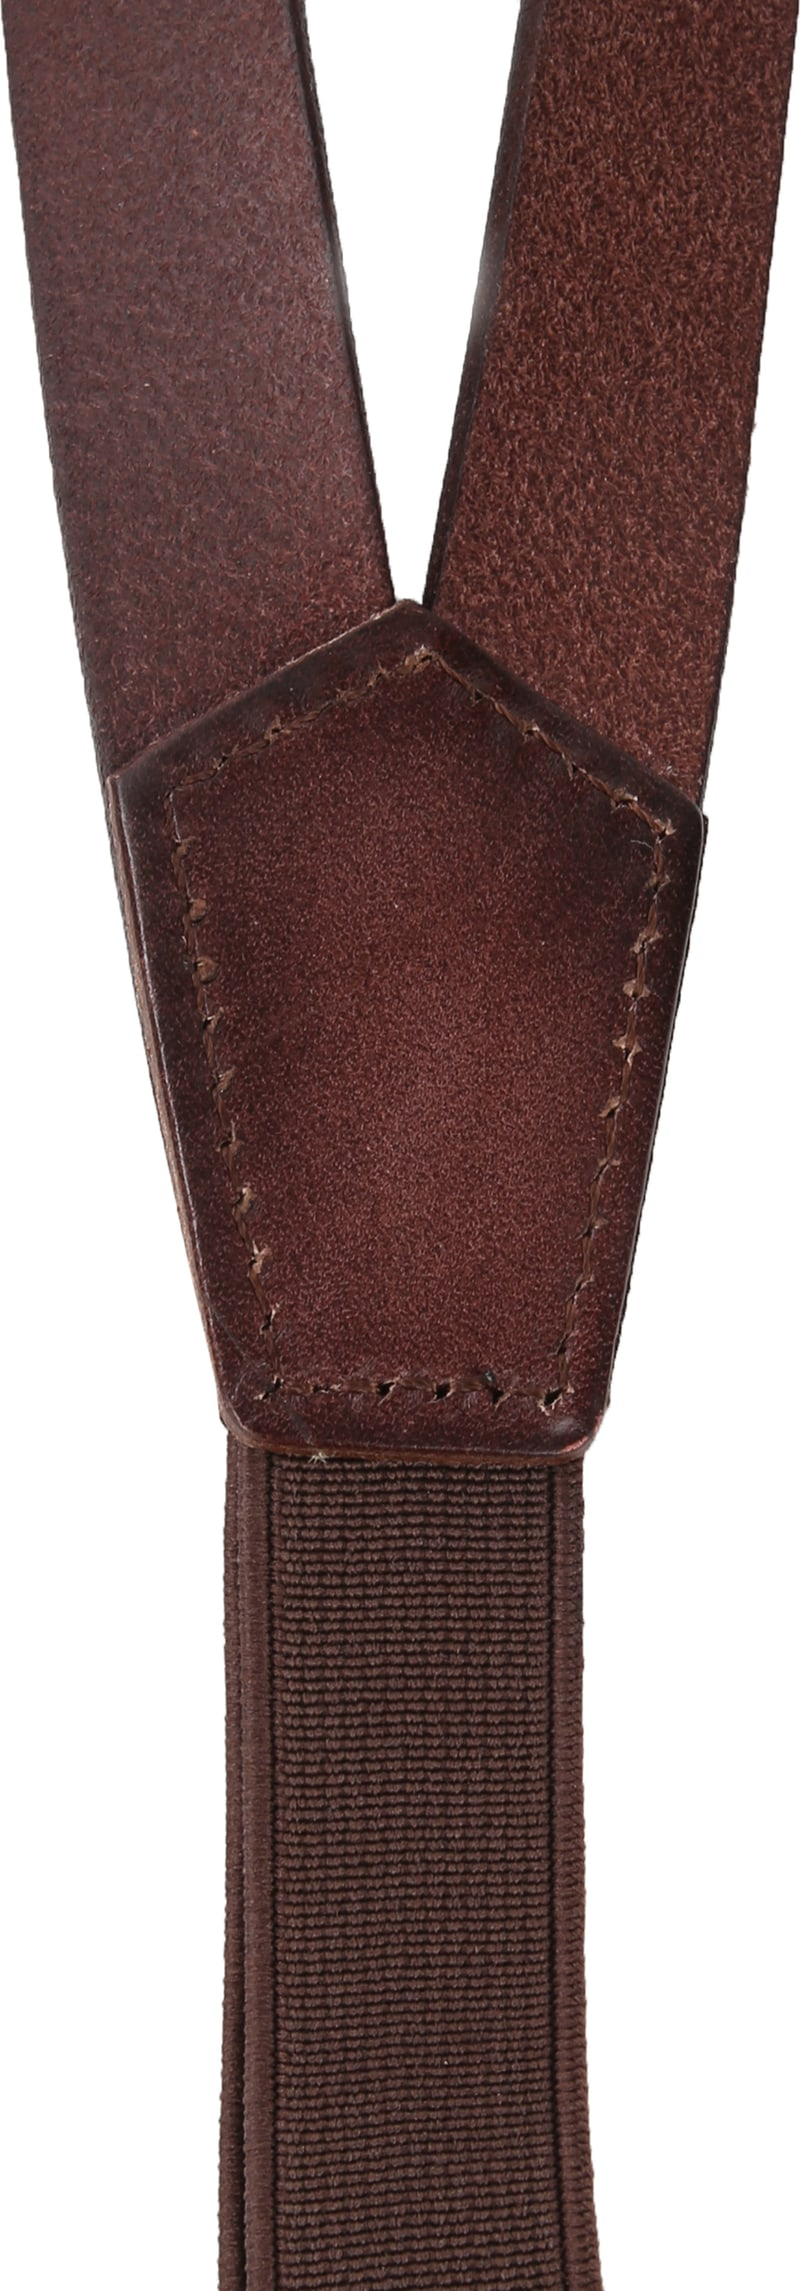 Suitable Suspenders Brown Leather photo 2